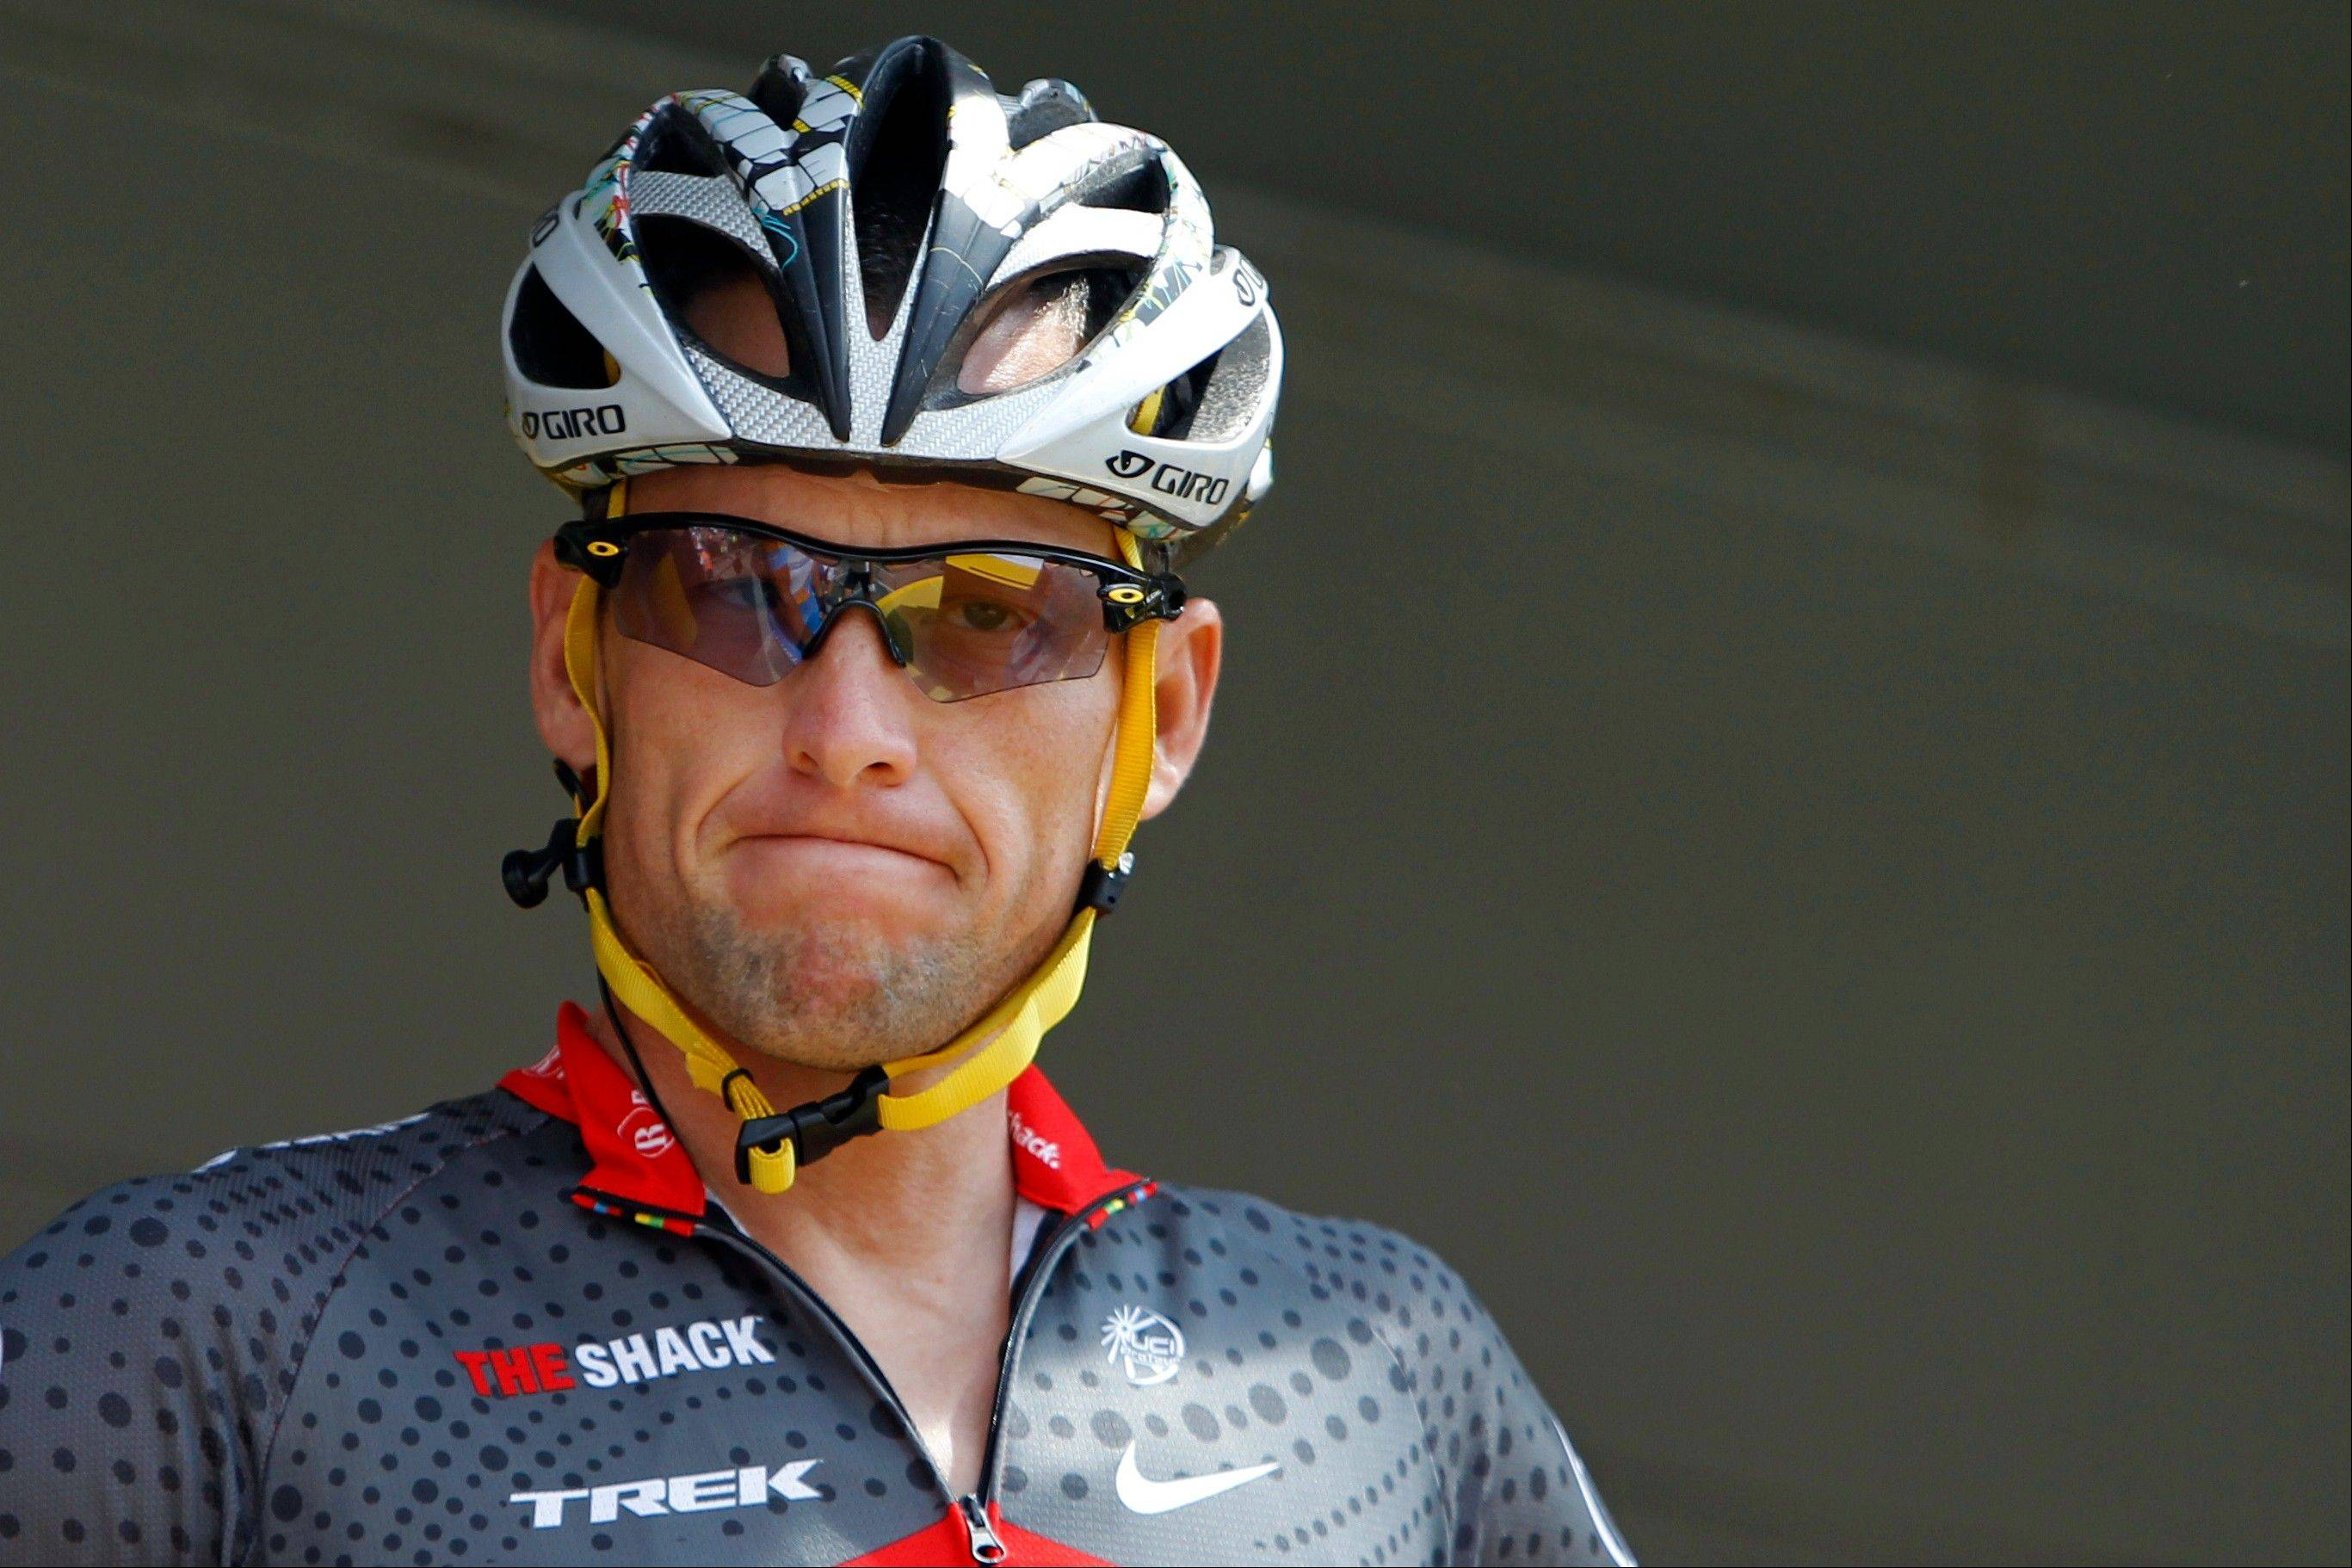 In this July 6, 2010, file photo, Lance Armstrong grimaces prior to the start of the third stage of the Tour de France cycling race in Wanze, Belgium. Armstrong said on Thursday, Aug. 23, 2012, that he is finished fighting charges from the United States Anti-Doping Agency that he used performance-enhancing drugs during his unprecedented cycling career, a decision that could put his string of seven Tour de France titles in jeopardy.